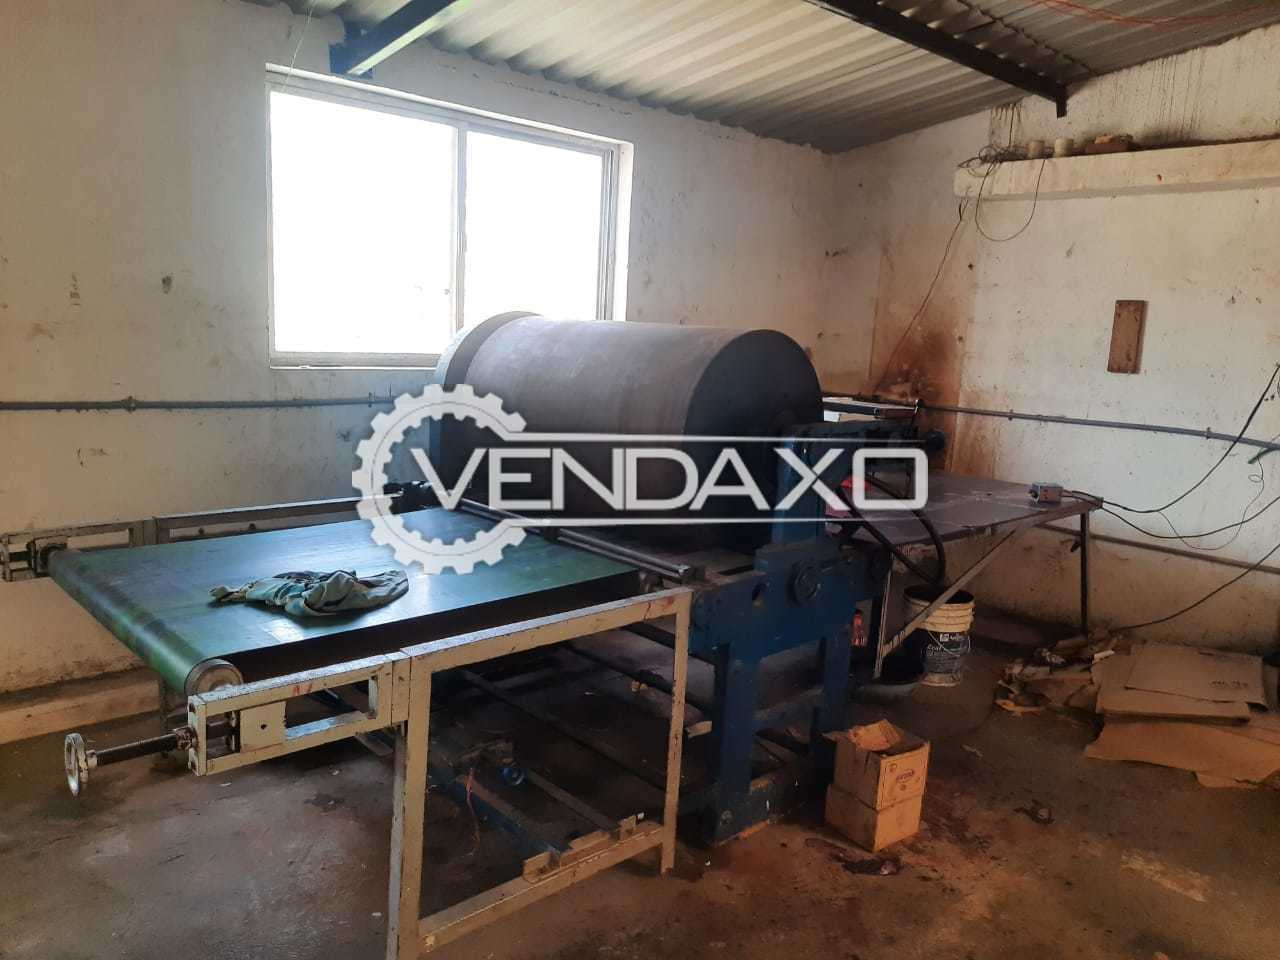 For Sale Used Rotary Cutting, Creasing, Slotter, Sheet Pasting, Box Stitcher, Reel to Sheet Cutter, Corrugation Machine - 2020 Model